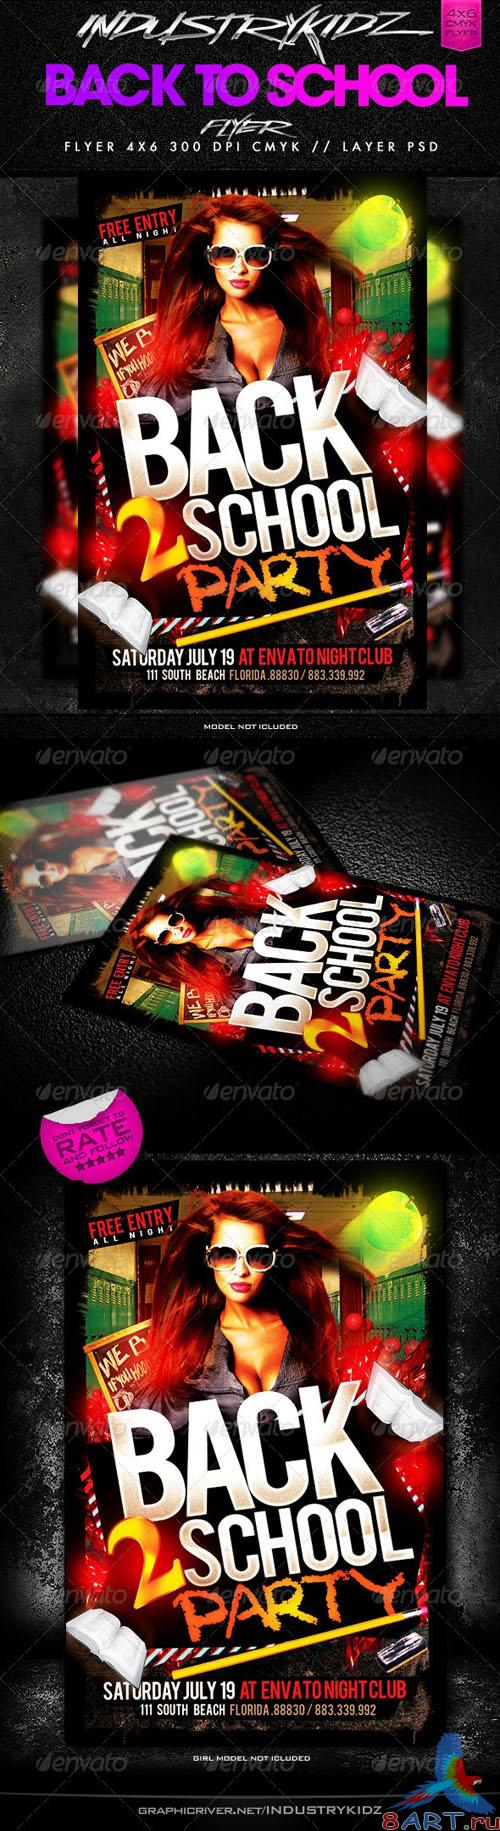 GraphicRiver - Back to School Flyer 2704000